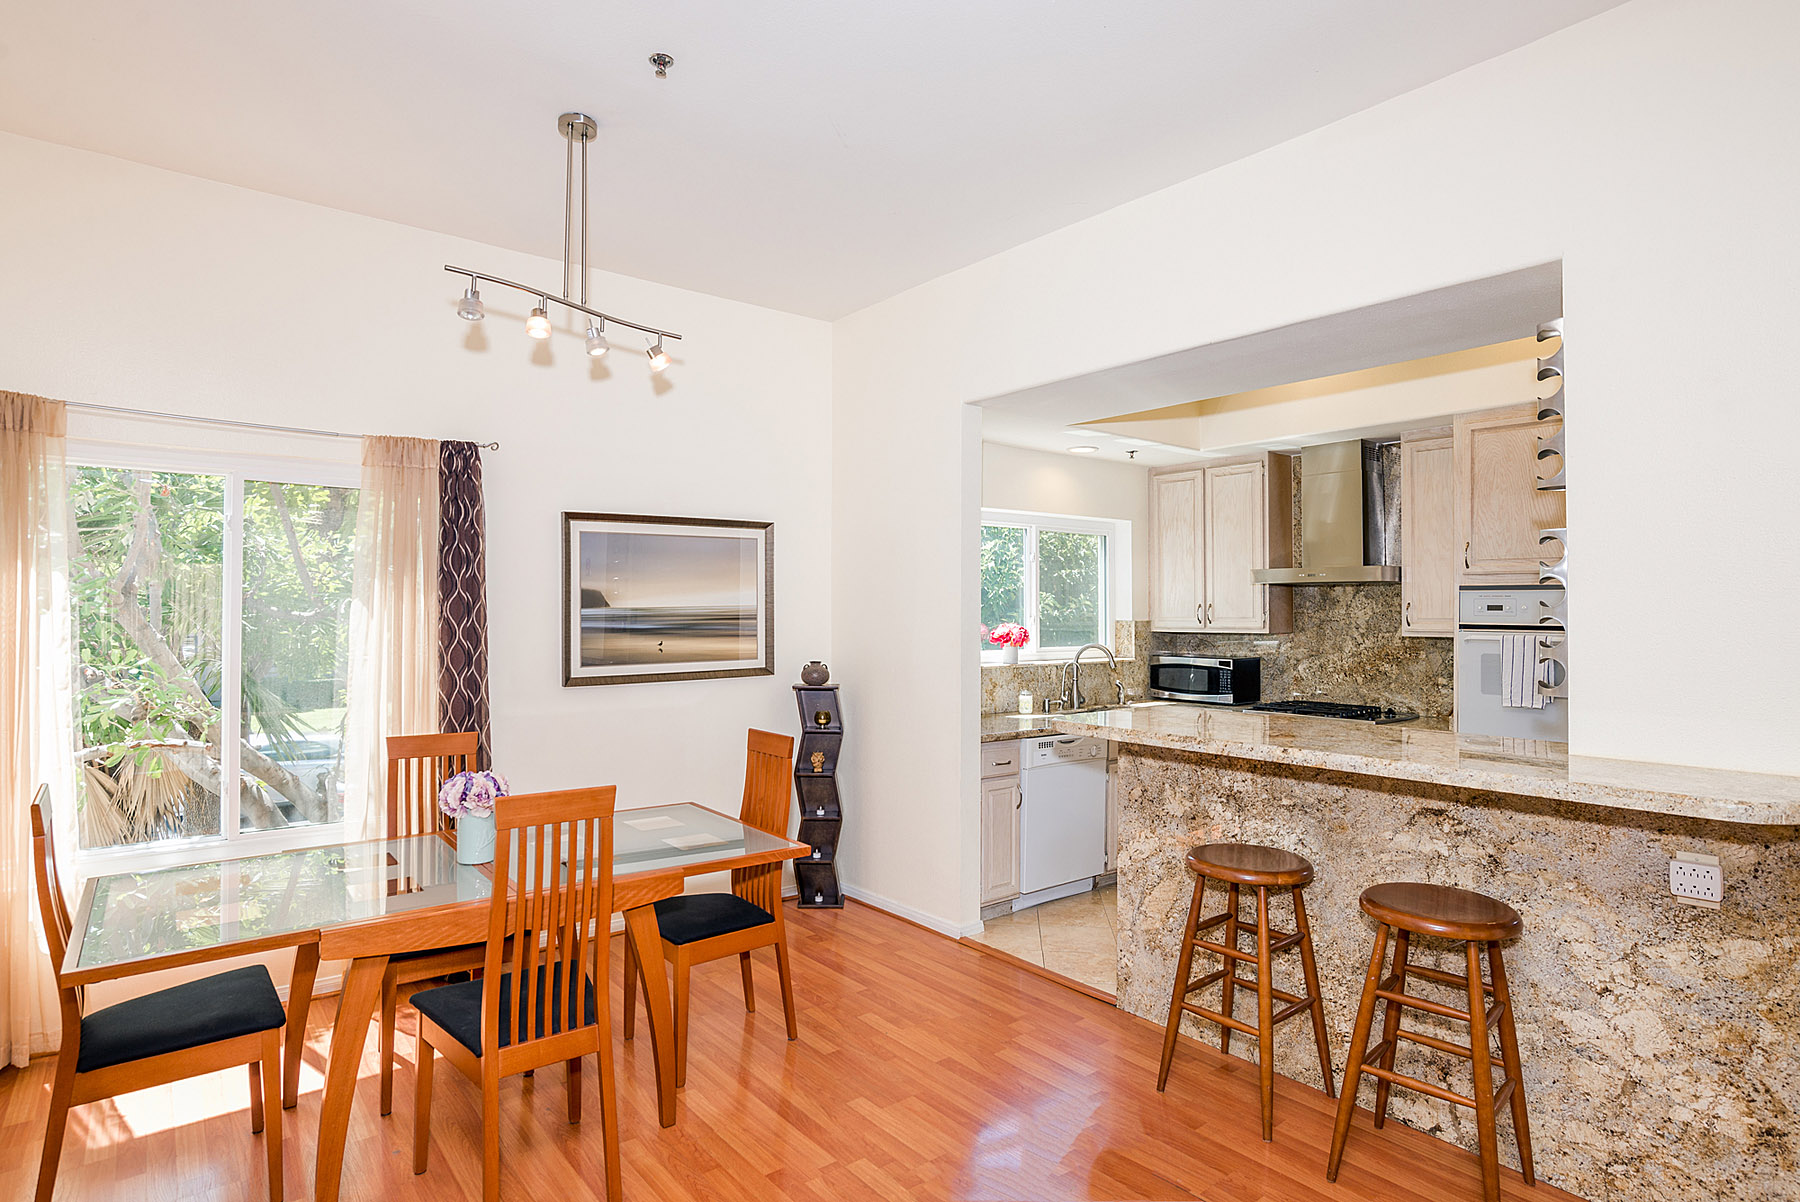 Open floor plan - living room spills into dining room and kitchen.